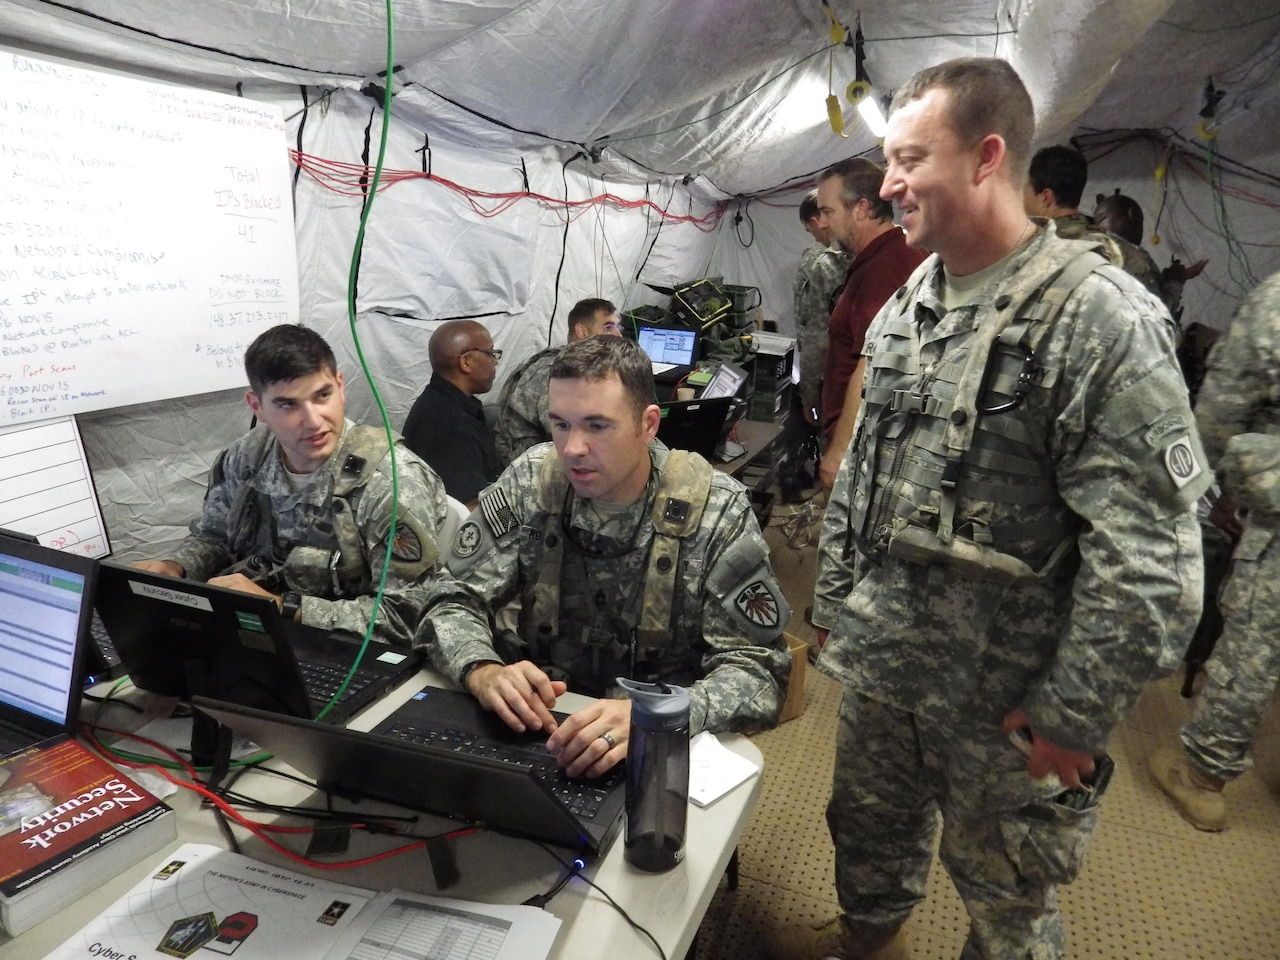 Army Sgts. 1st Class Richard Miller, left, and Brian Rowcotsky, center, of the U.S. Army Cyber Protection Brigade discuss the response to a simulated cyberattack on the 1st Brigade Combat Team, 82nd Airborne Division, with Army Staff Sgt. Frederick Roquemore, a cyber network defender with the brigade, at the Joint Readiness Training Center at Fort Polk, La., Nov. 6, 2015. The Defense Department's innovation outpost in Silicon Valley is hosting an information meeting with Army and Defense Advanced Research Projects Agency officials March 31, 2016, to highlight potential contracting opportunities. Army photo by Bill Roche